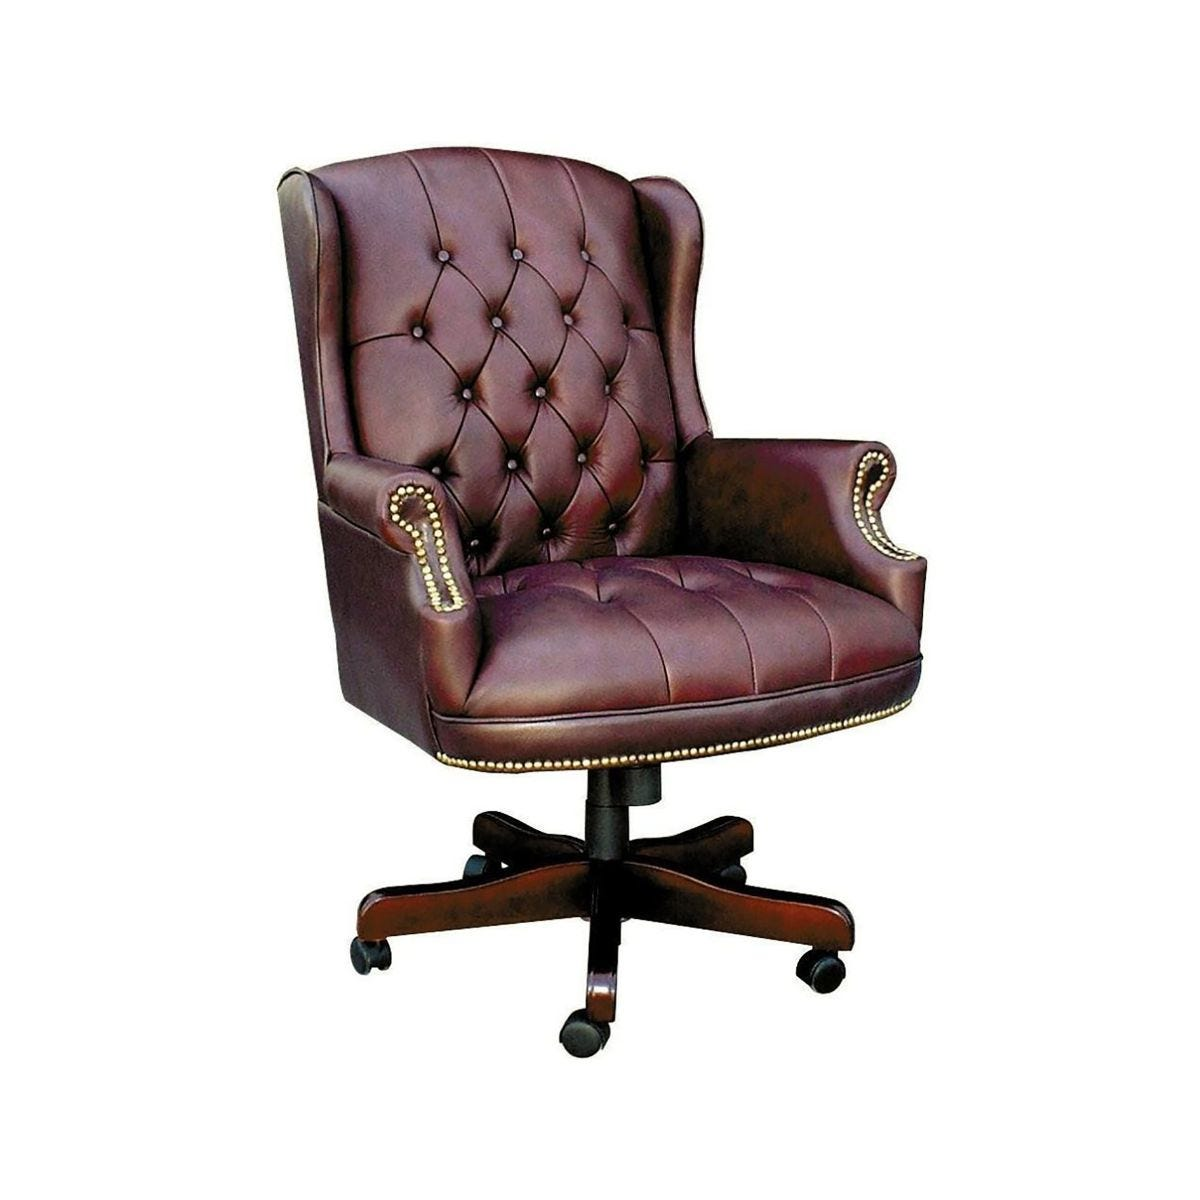 Chairman Swivel Executive Office Chair, Burgundy